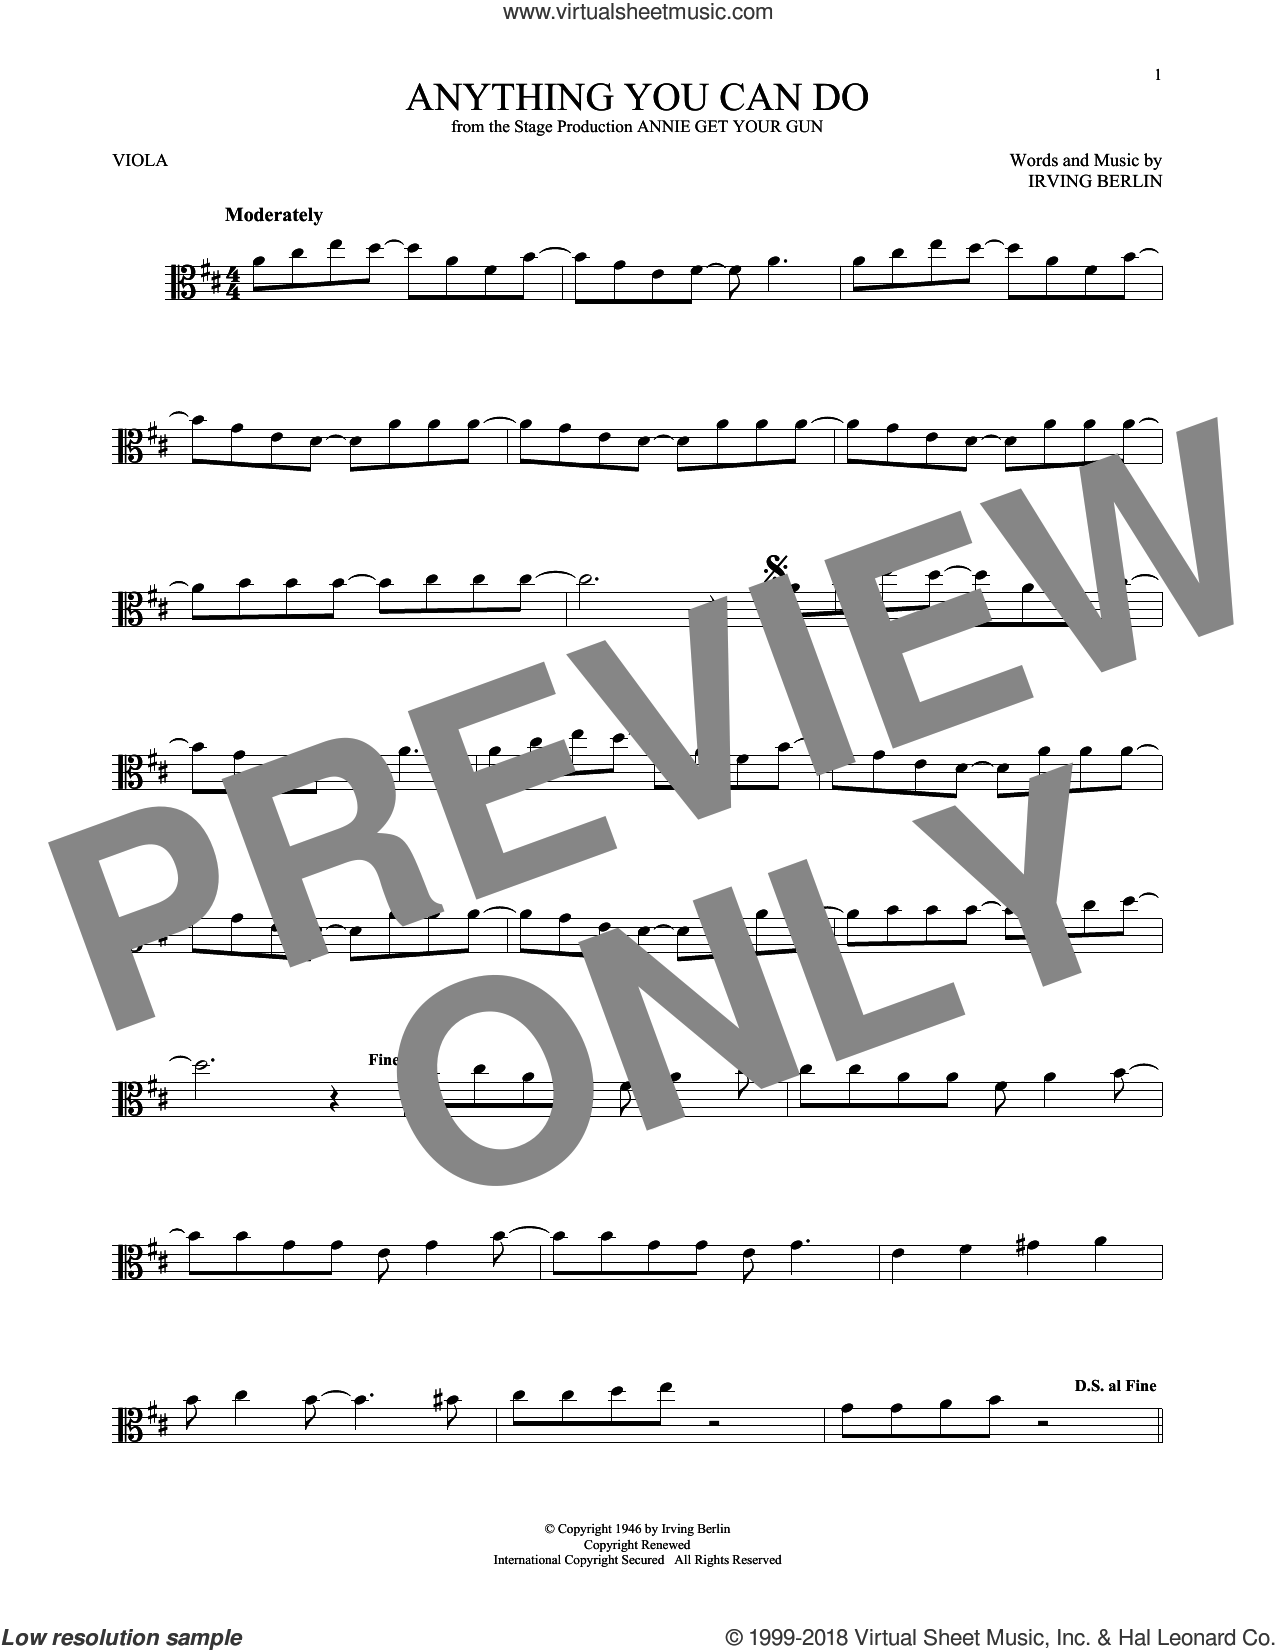 Anything You Can Do sheet music for viola solo by Irving Berlin, intermediate skill level